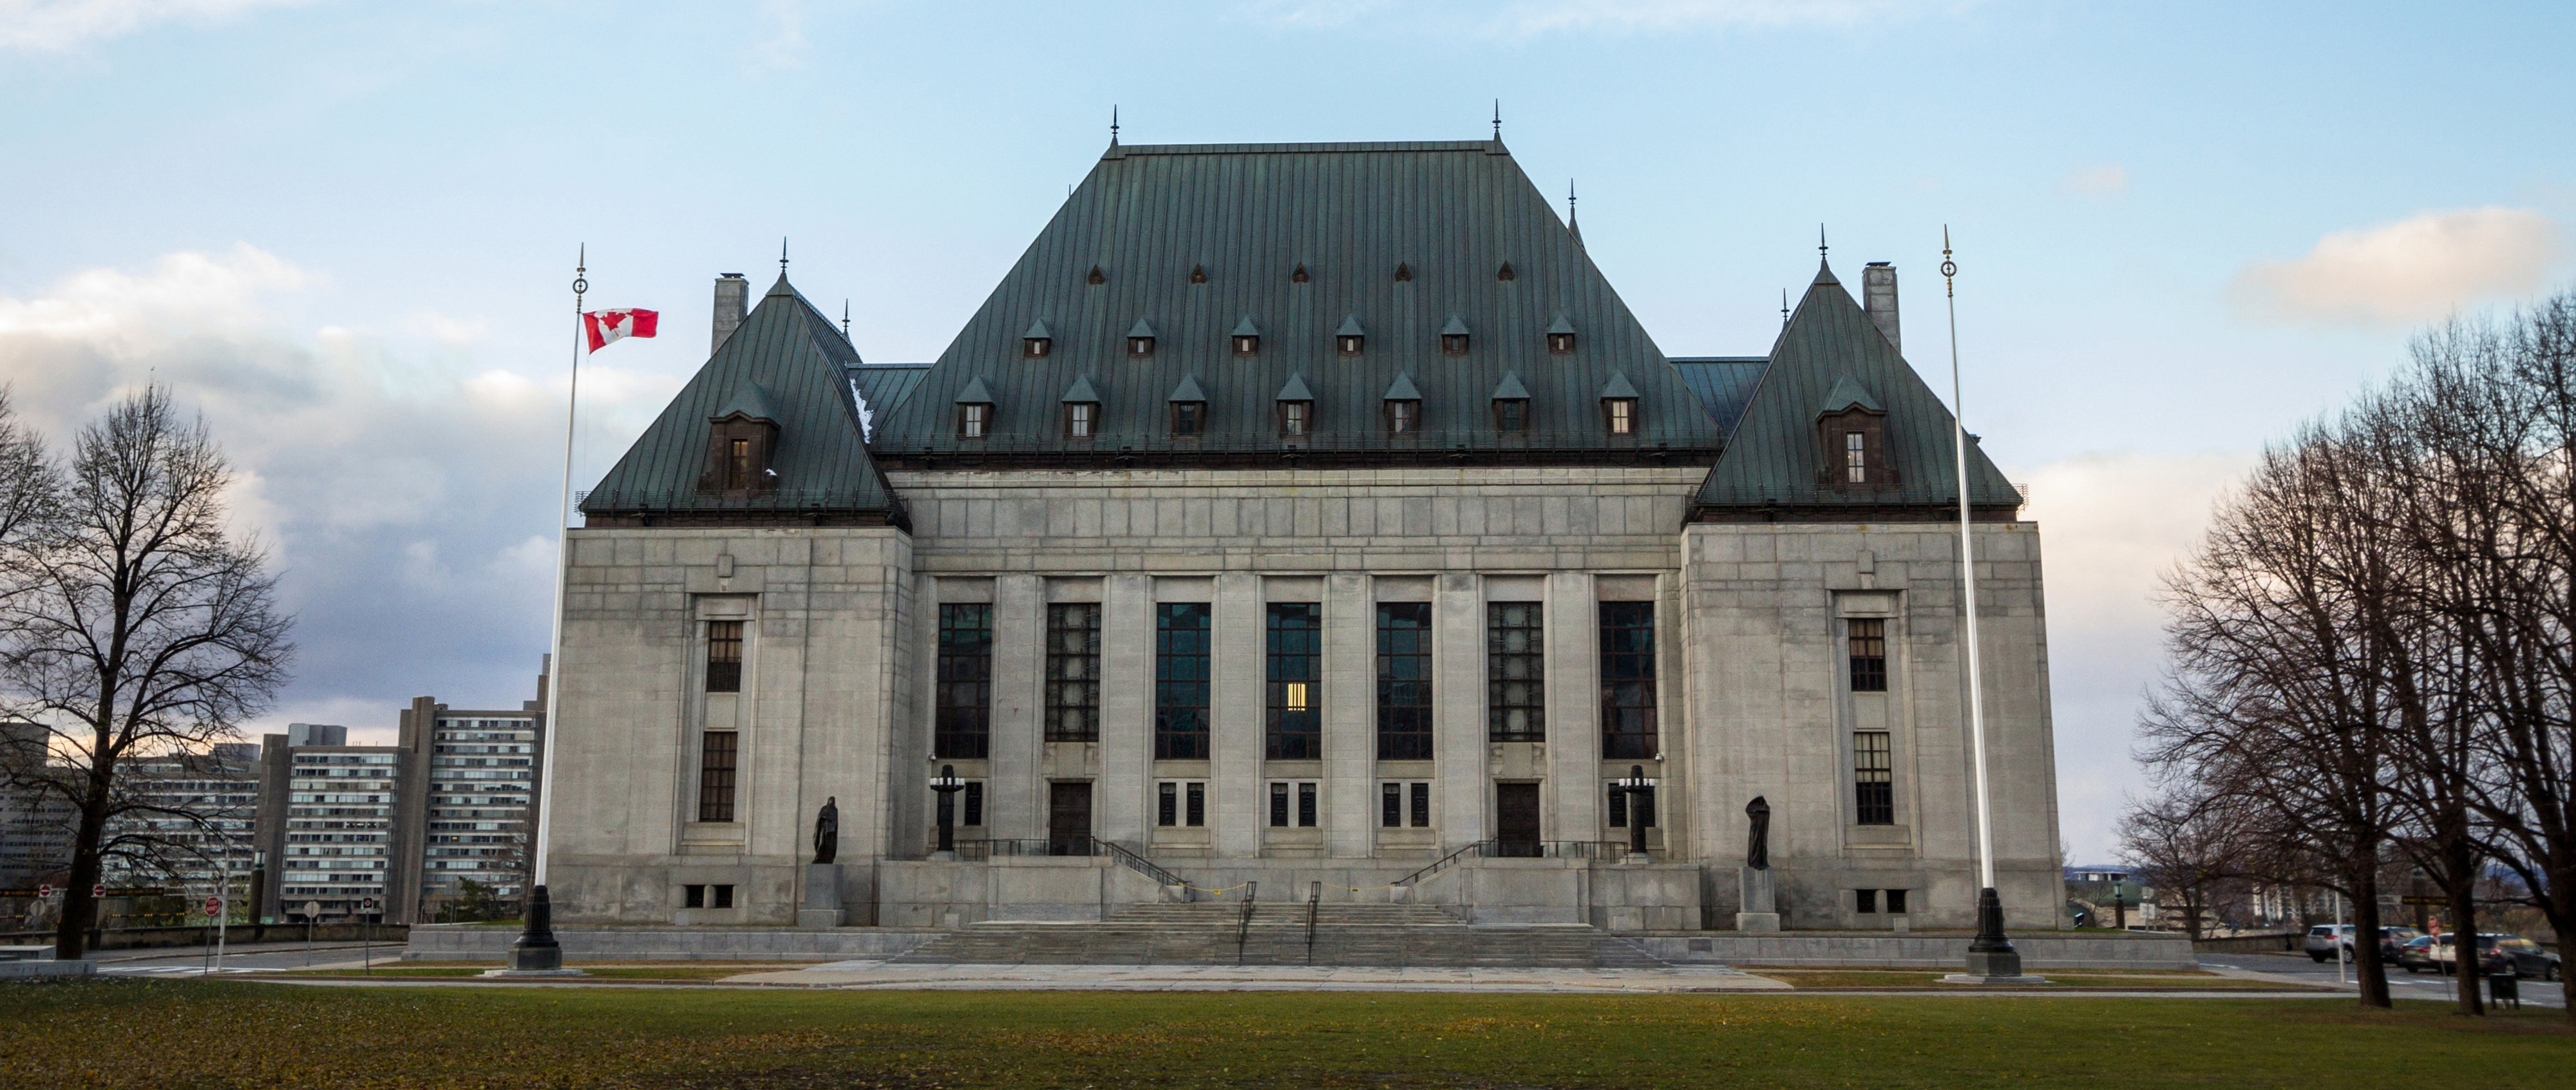 The Supreme Court of Canada has ruled in two separate decisions that Canadians have an expectation of privacy, including in public spaces and online.